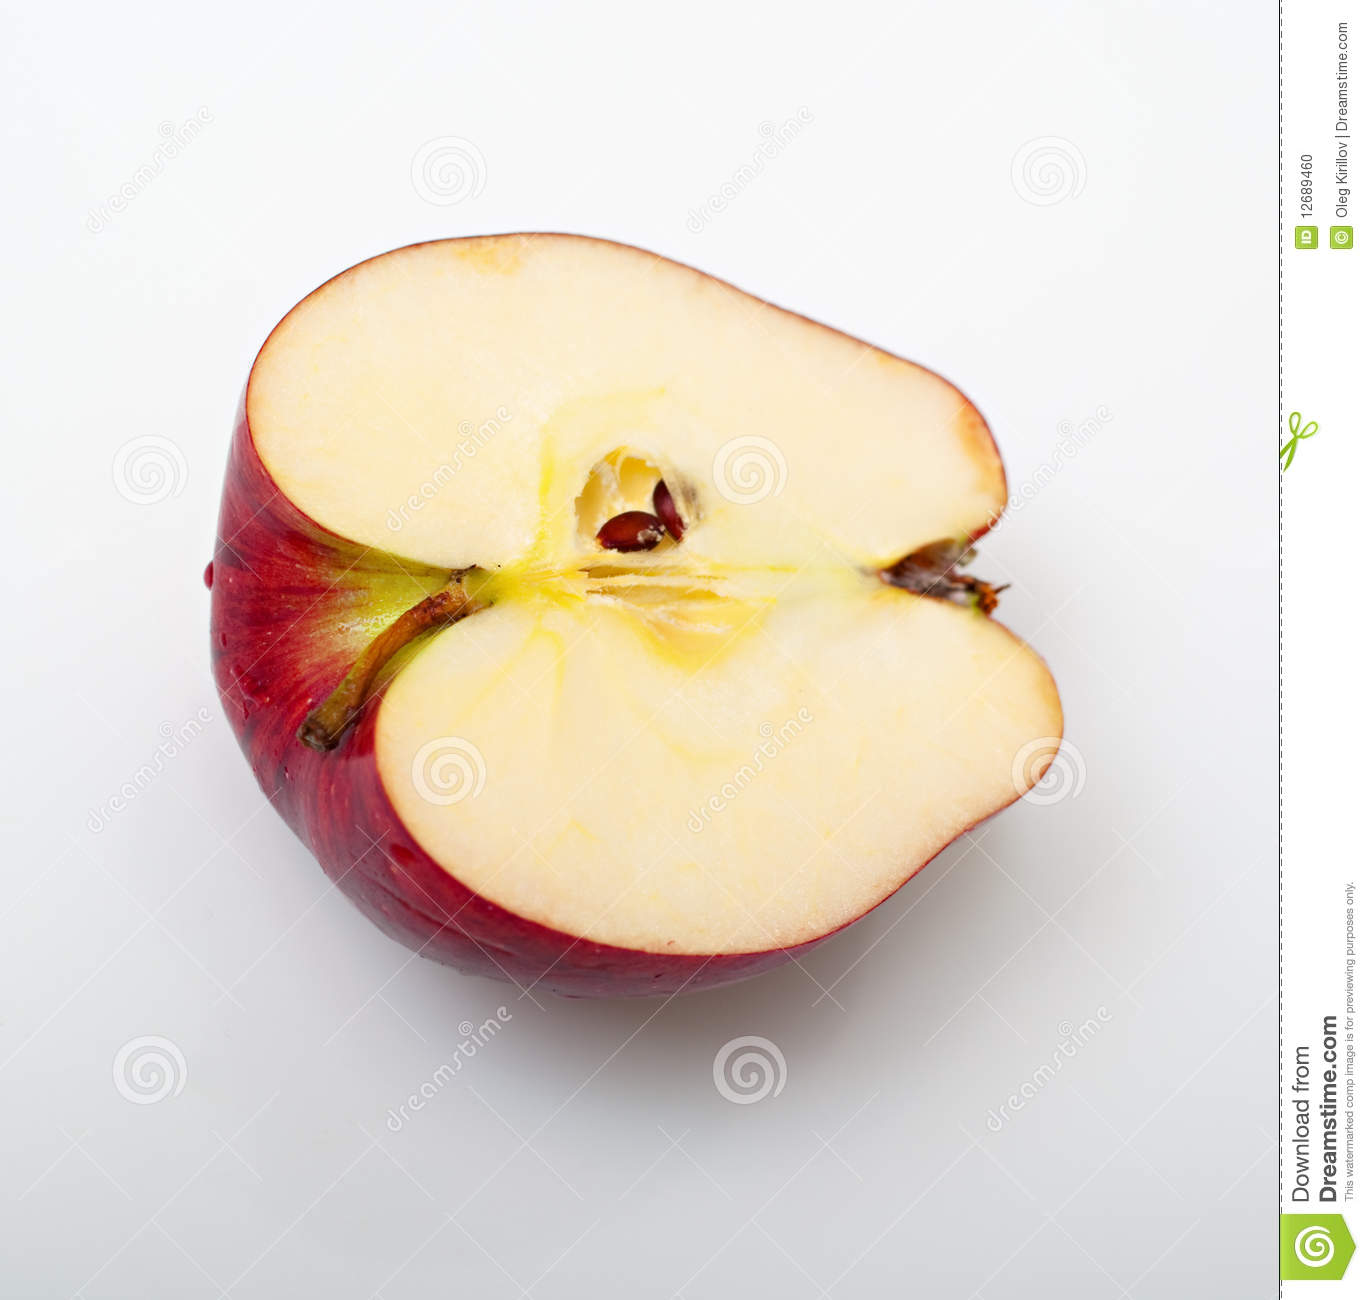 how to cut an apple unevenly